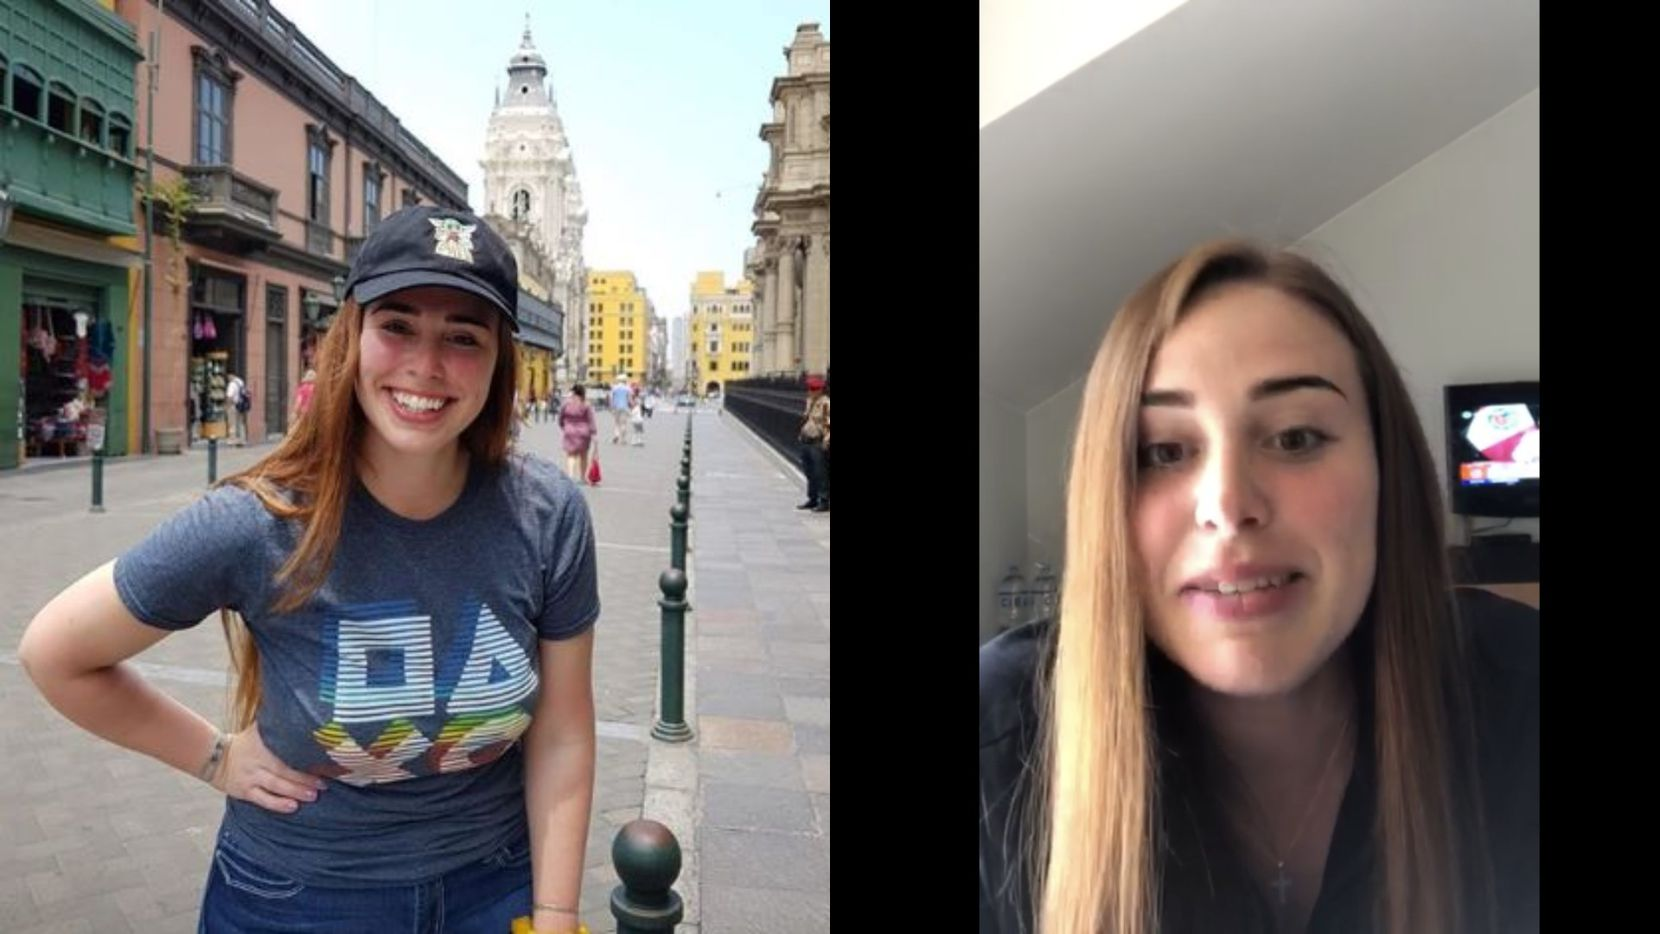 Joshlyn Davis of Dallas was visiting Cusco, Peru when the government there issue a 15-day quarantine to stem the spread of COVID-19. On the left is a picture before the quarantine and on the right, she is speaking from her hotel room where she has been ordered to stay, unless she is getting groceries or medical attention.